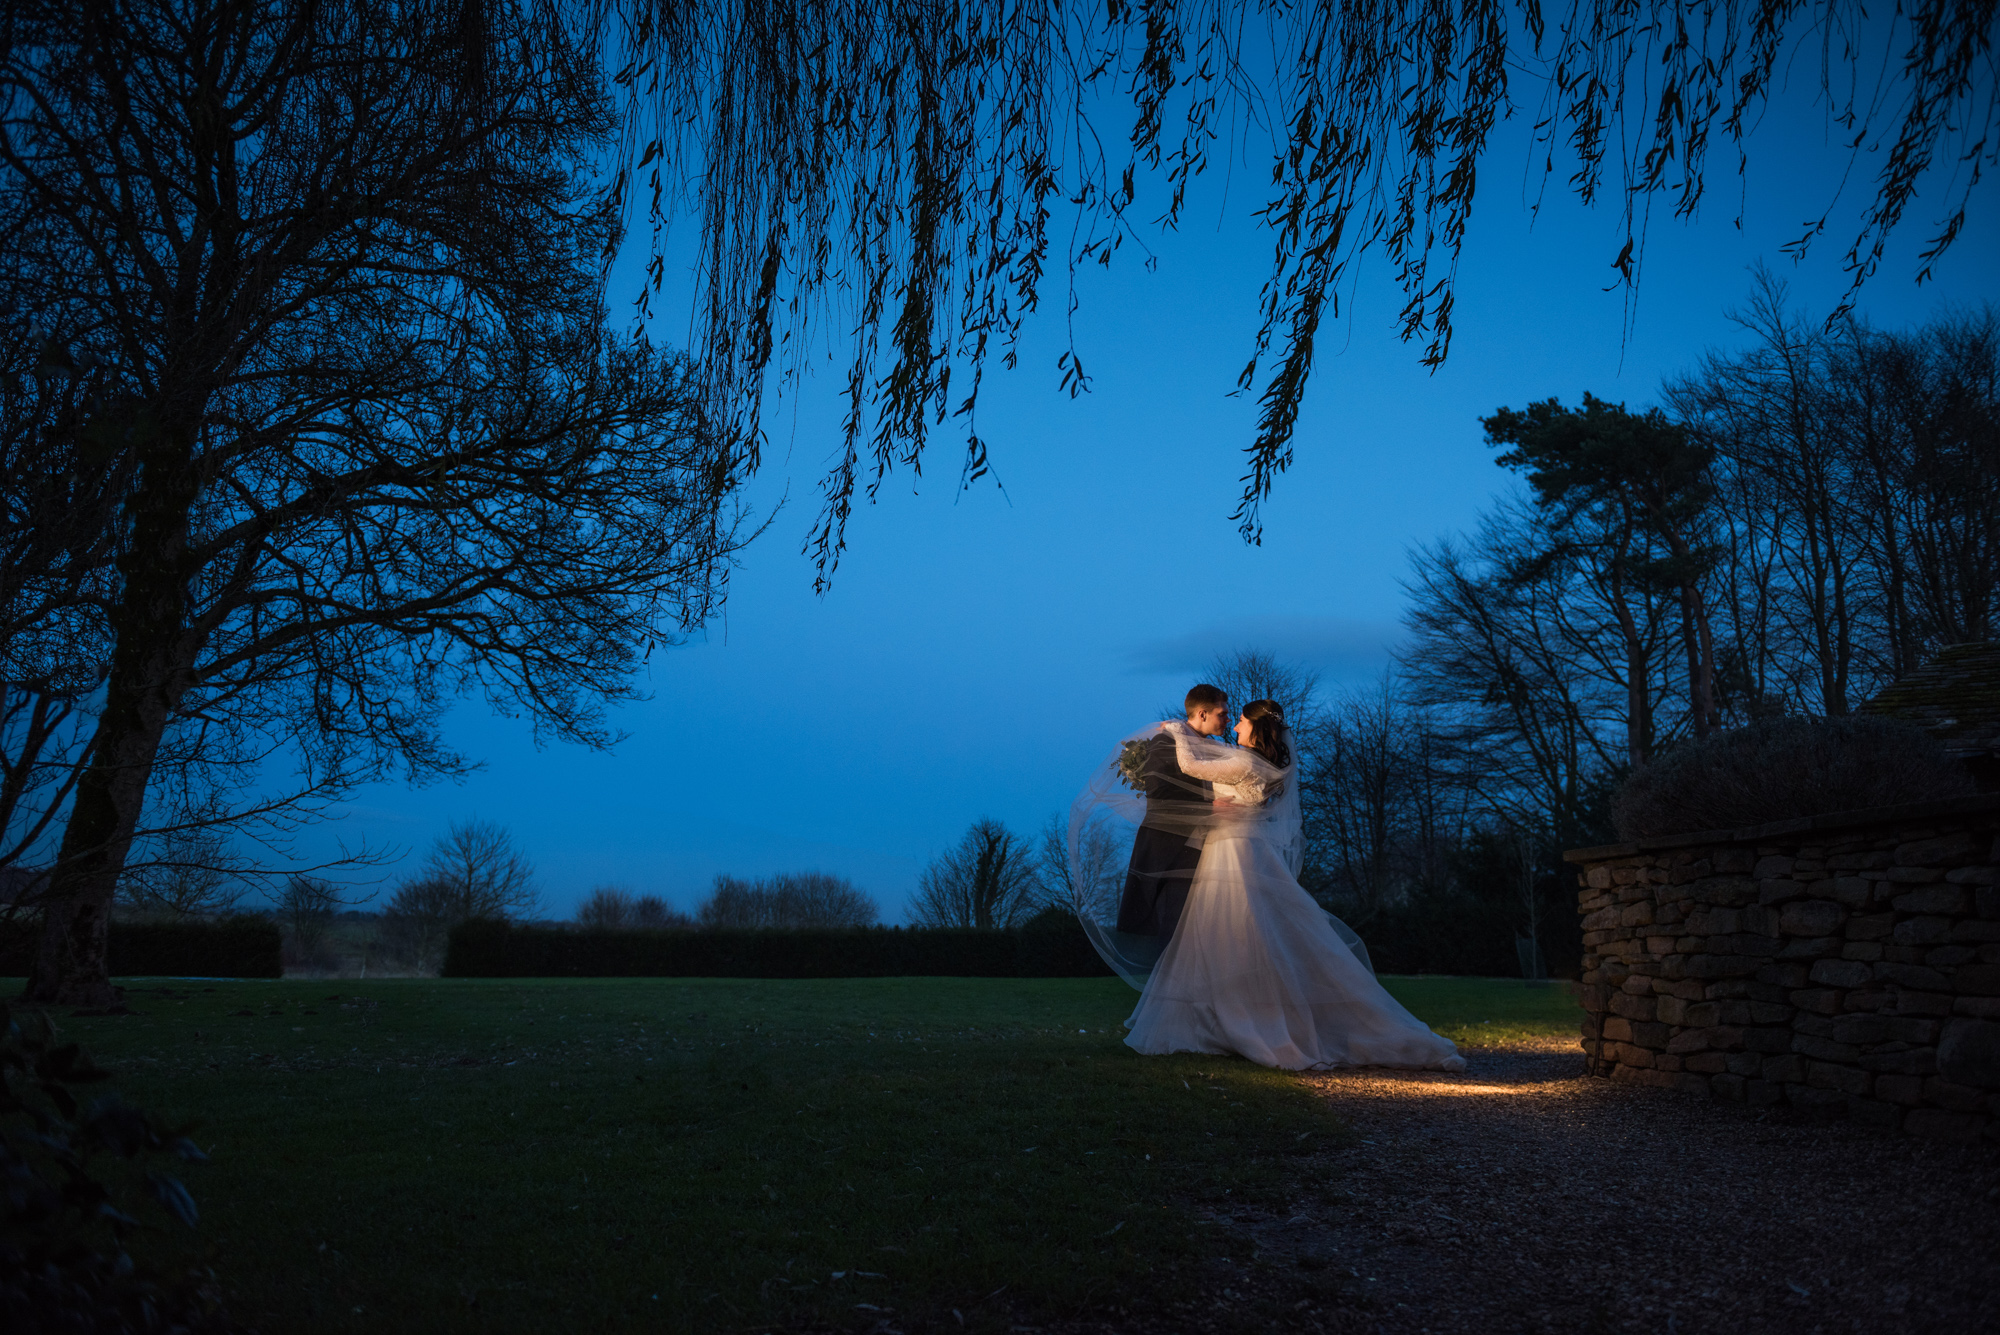 Dramatic winter wedding photographed